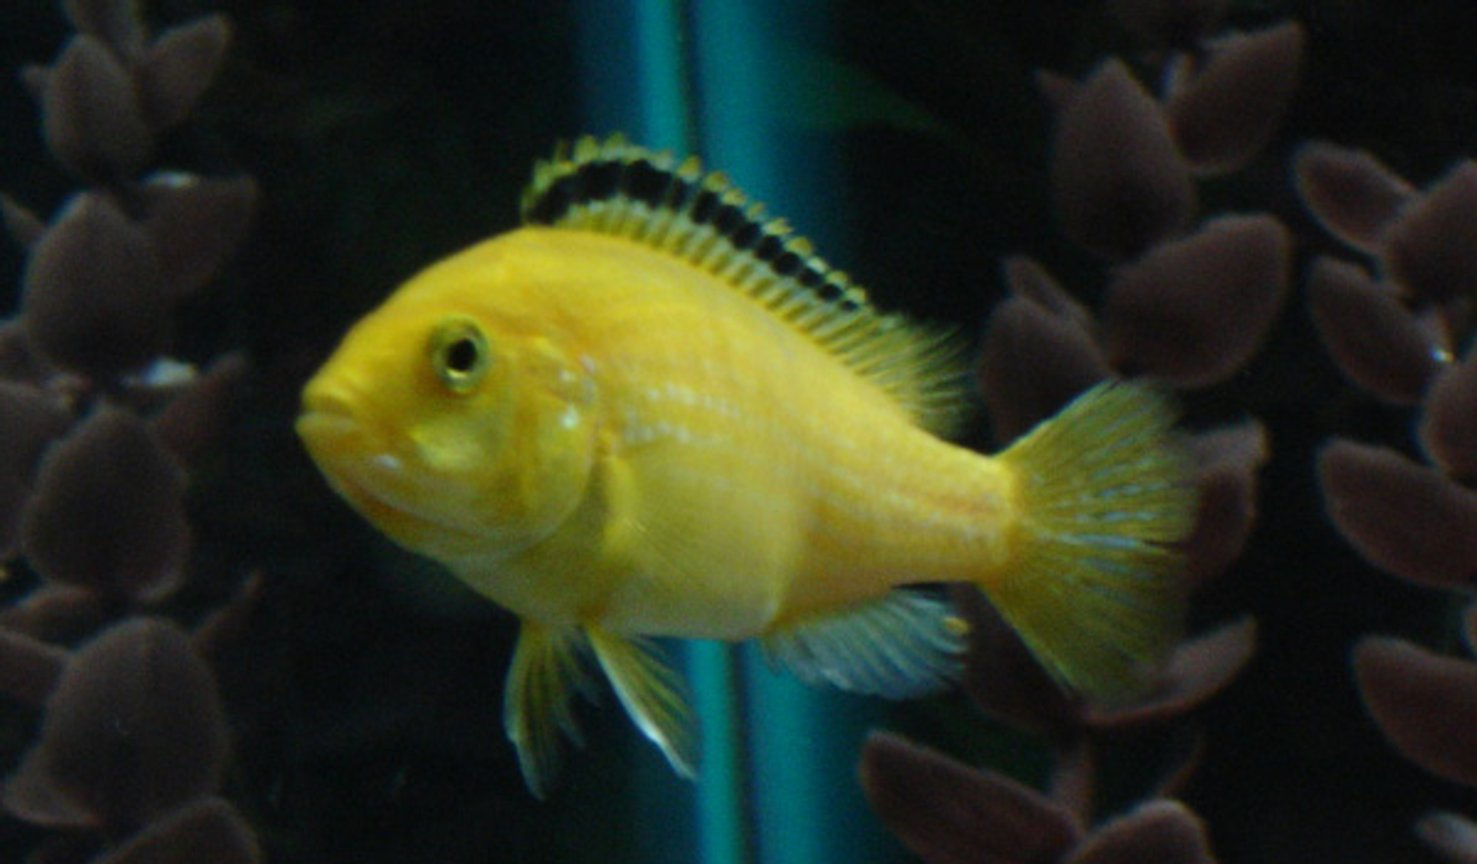 freshwater fish - labidochromis caeruleus - electric yellow cichlid stocking in 55 gallons tank - Electric Yellow Lab